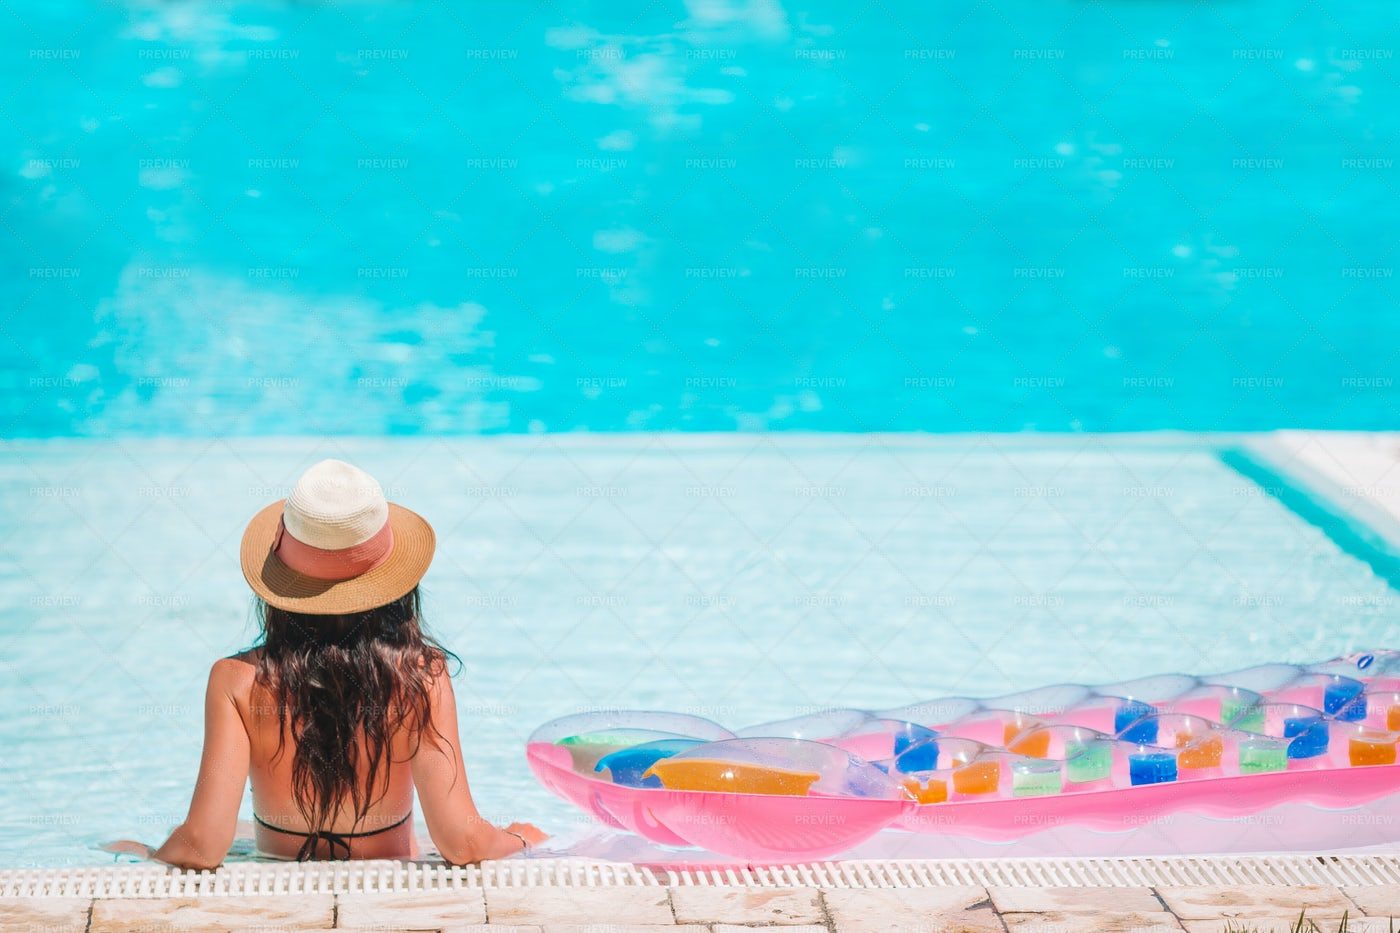 Woman Relaxing On Swimming Pool: Stock Photos